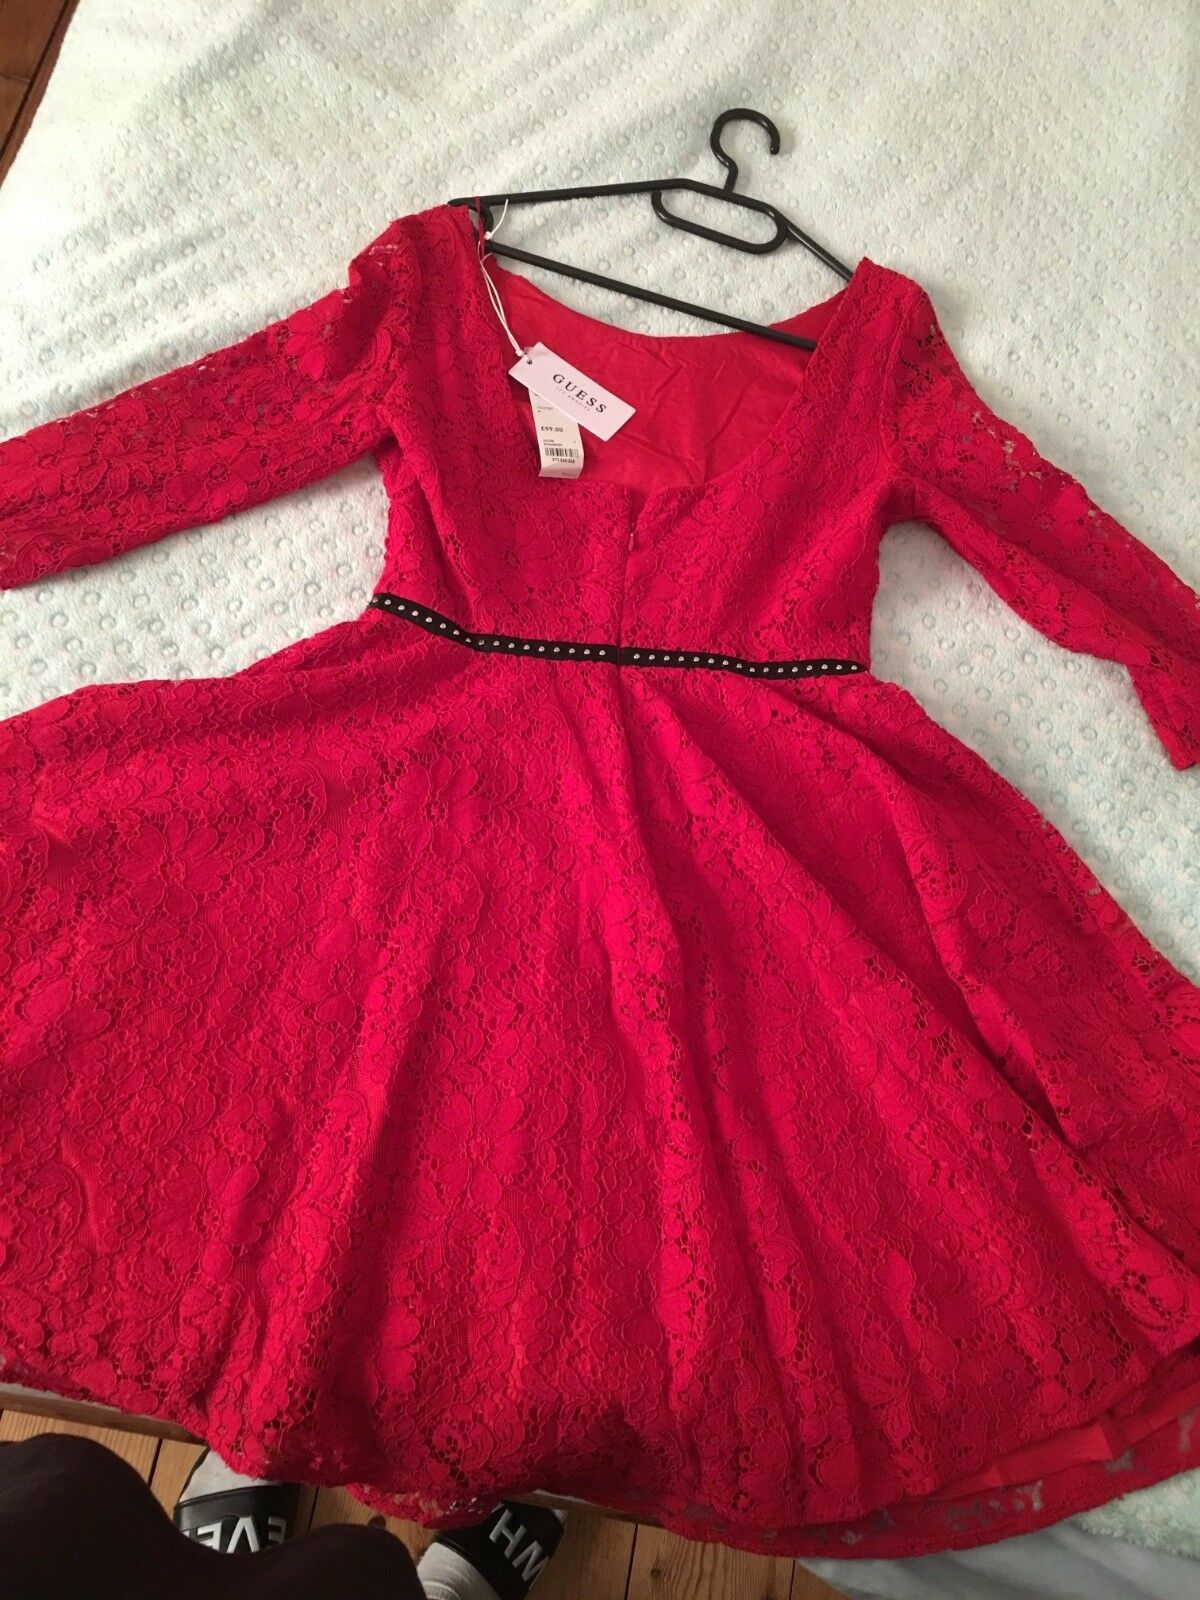 Guess new res dress m size with tags